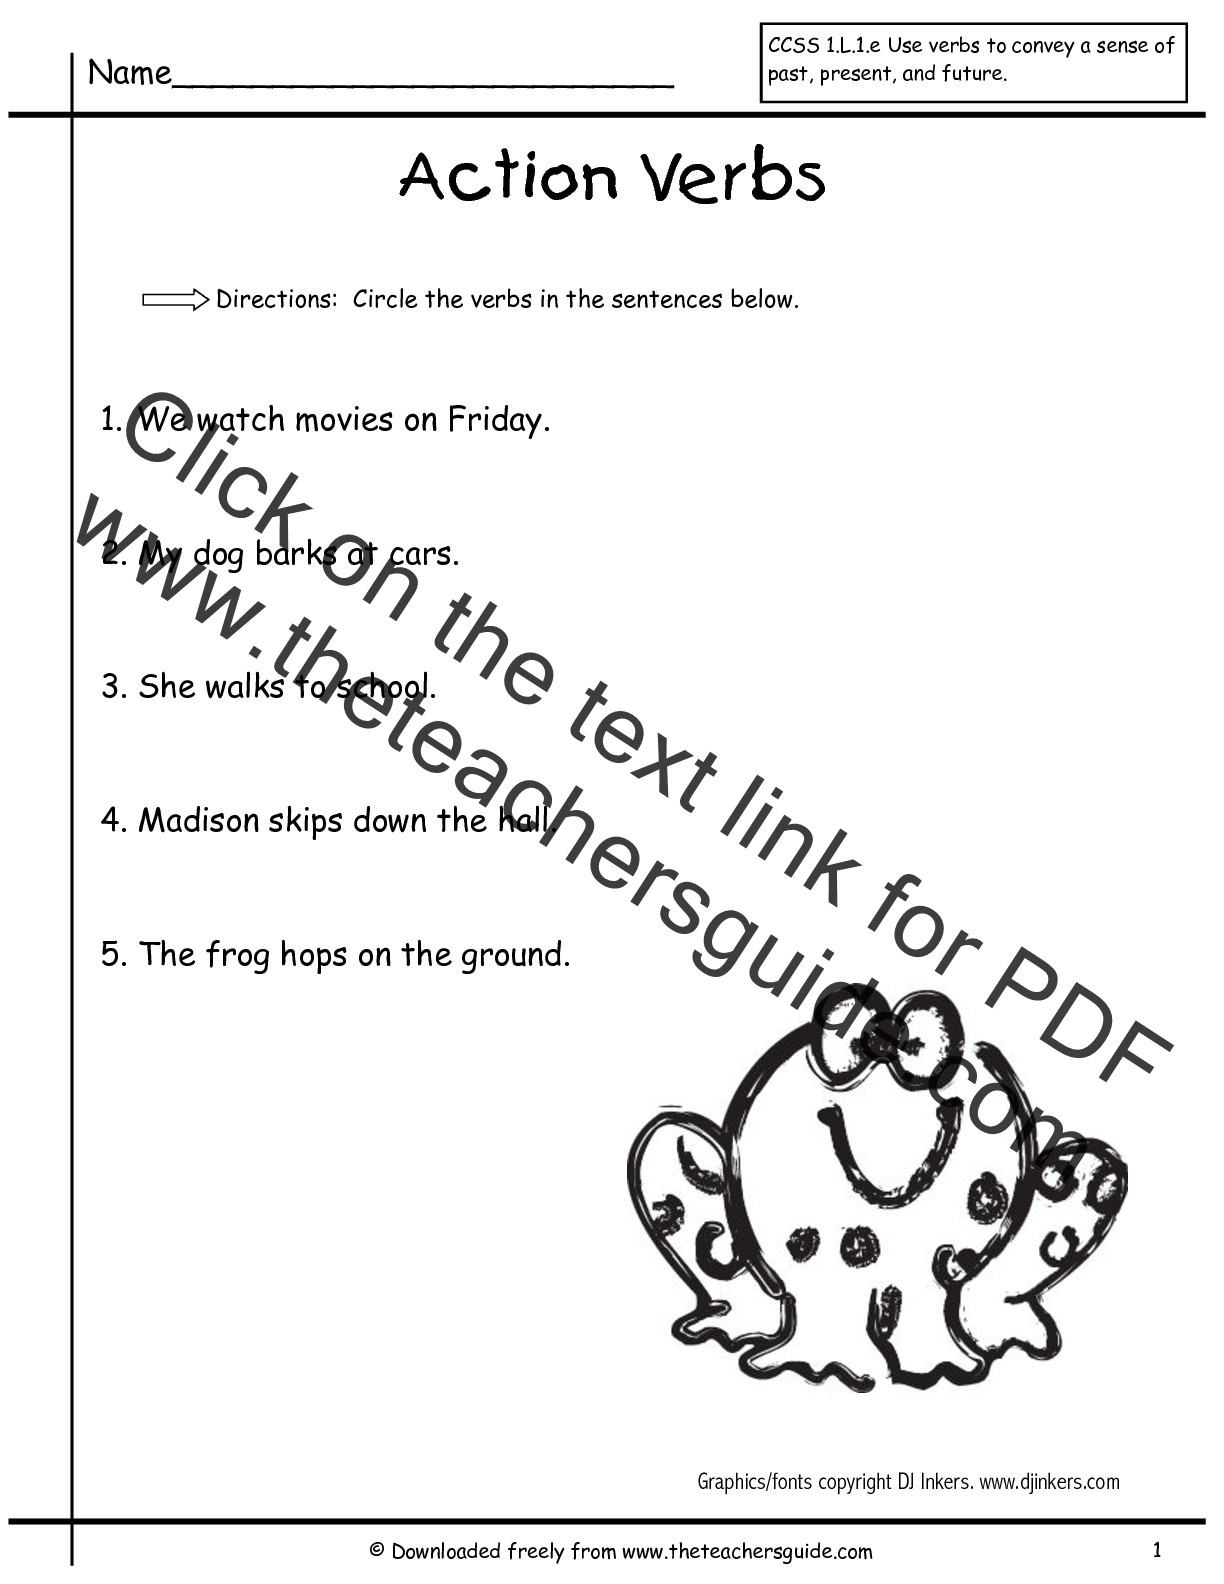 Verbs Worksheets First Grade Mcgraw Hill Wonders 1st Grade Resources and Printouts for